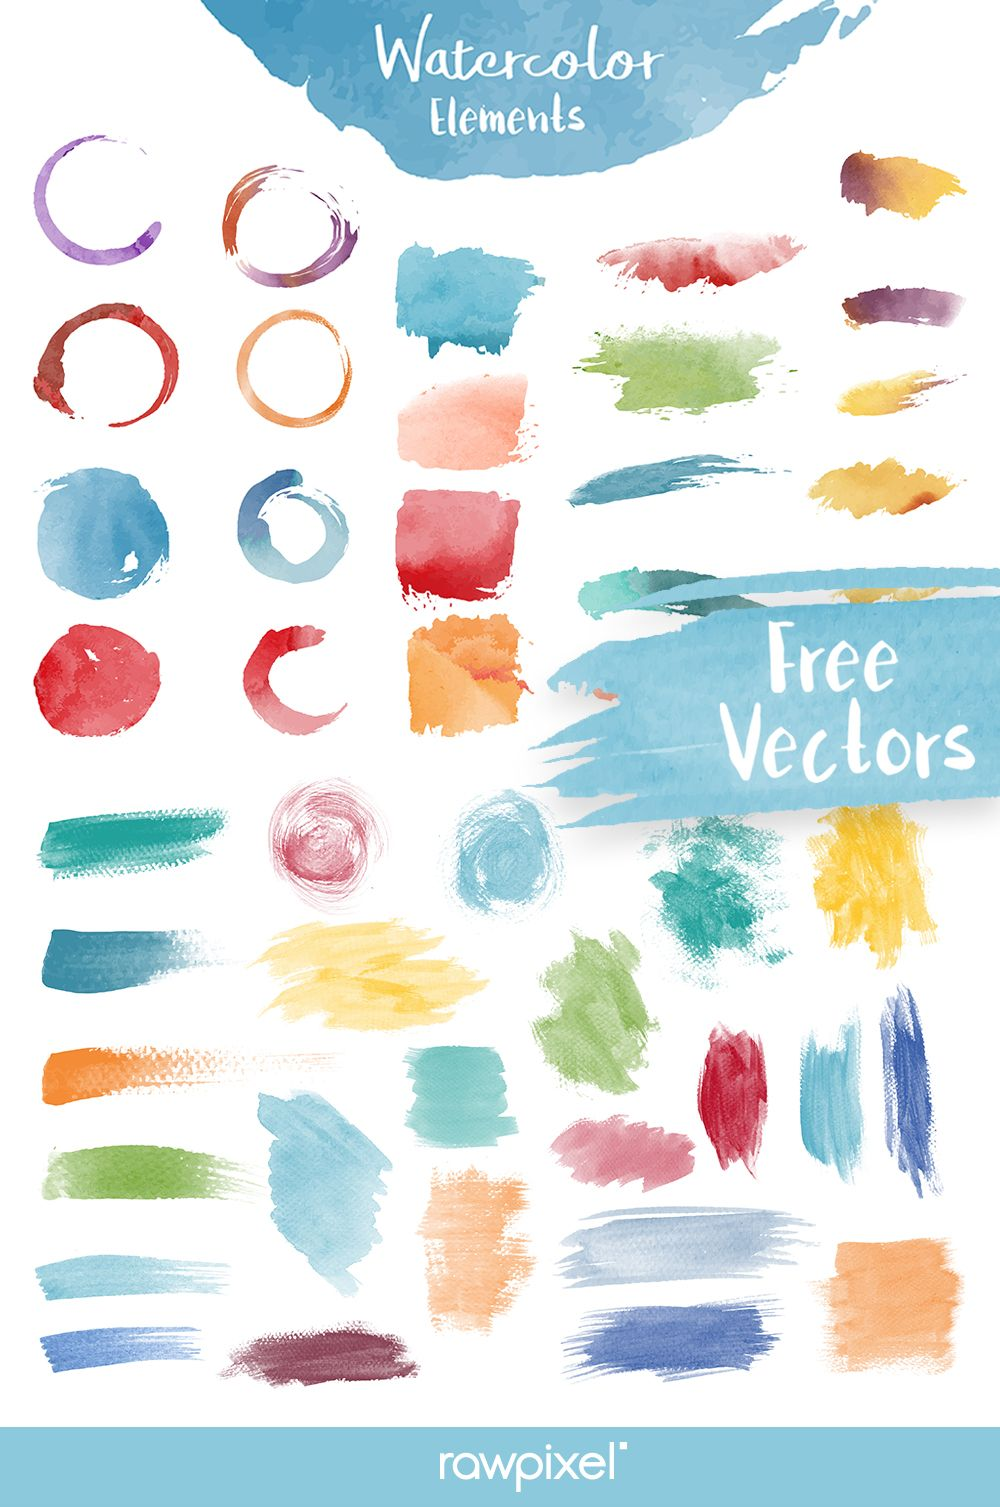 Download This Set Of Free Royalty Free Watercolor Elements And